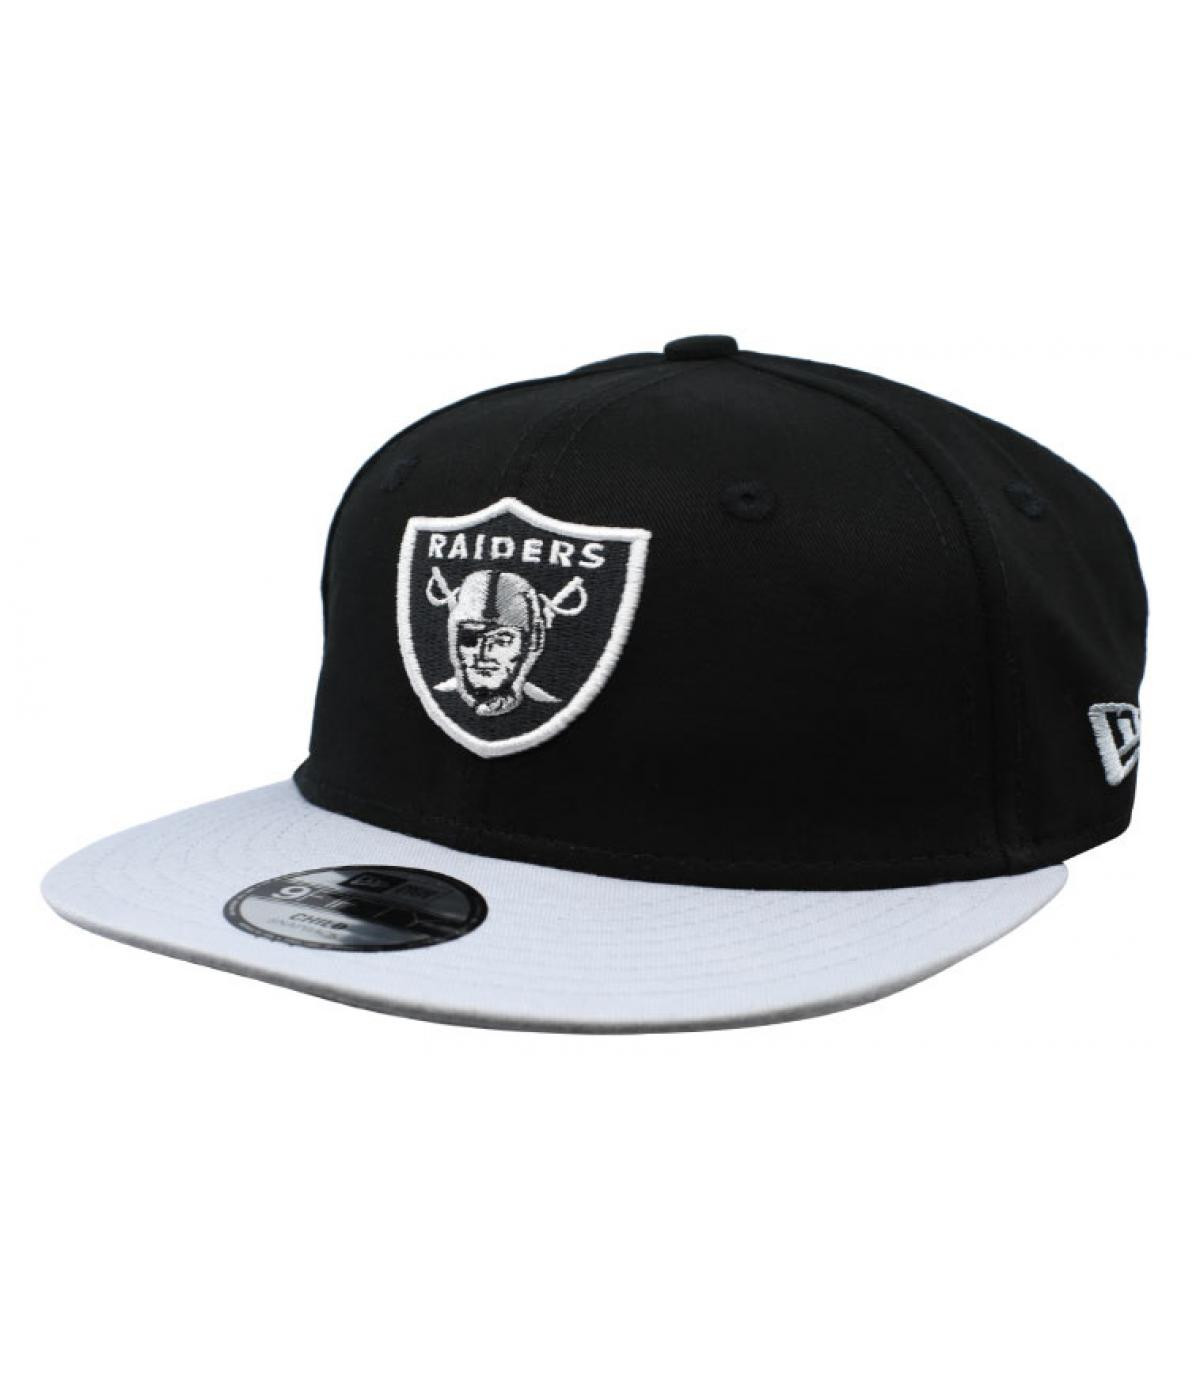 Détails Snapback Contrast Team Raiders 9Fifty - image 1